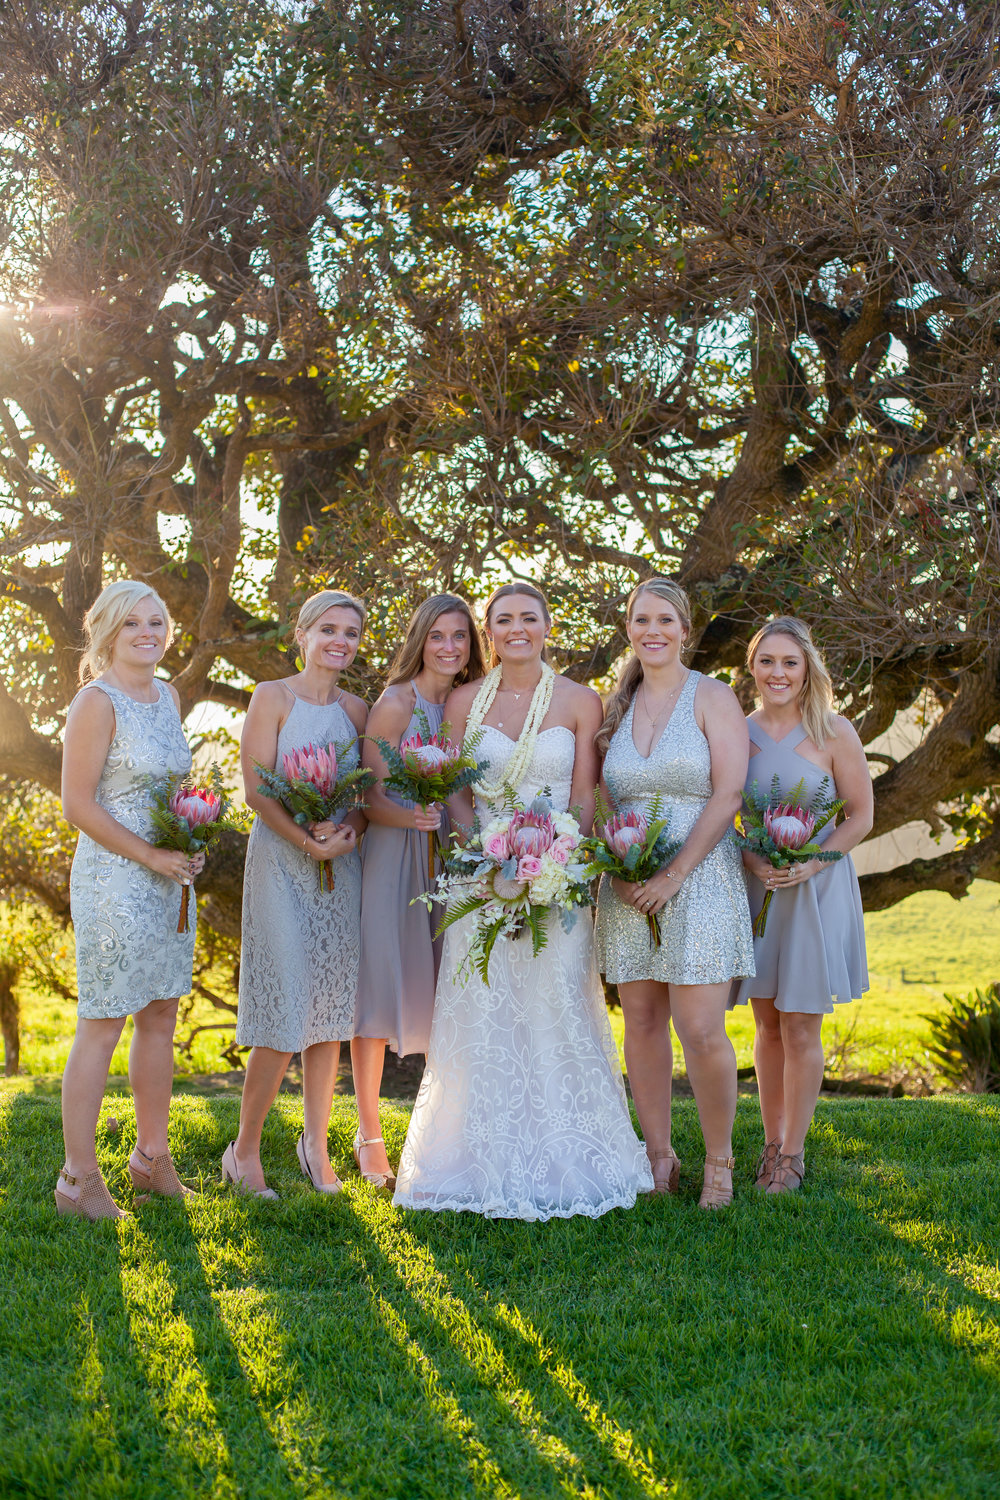 big island hawaii kahua ranch wedding © kelilina photography 20170106172934.jpg